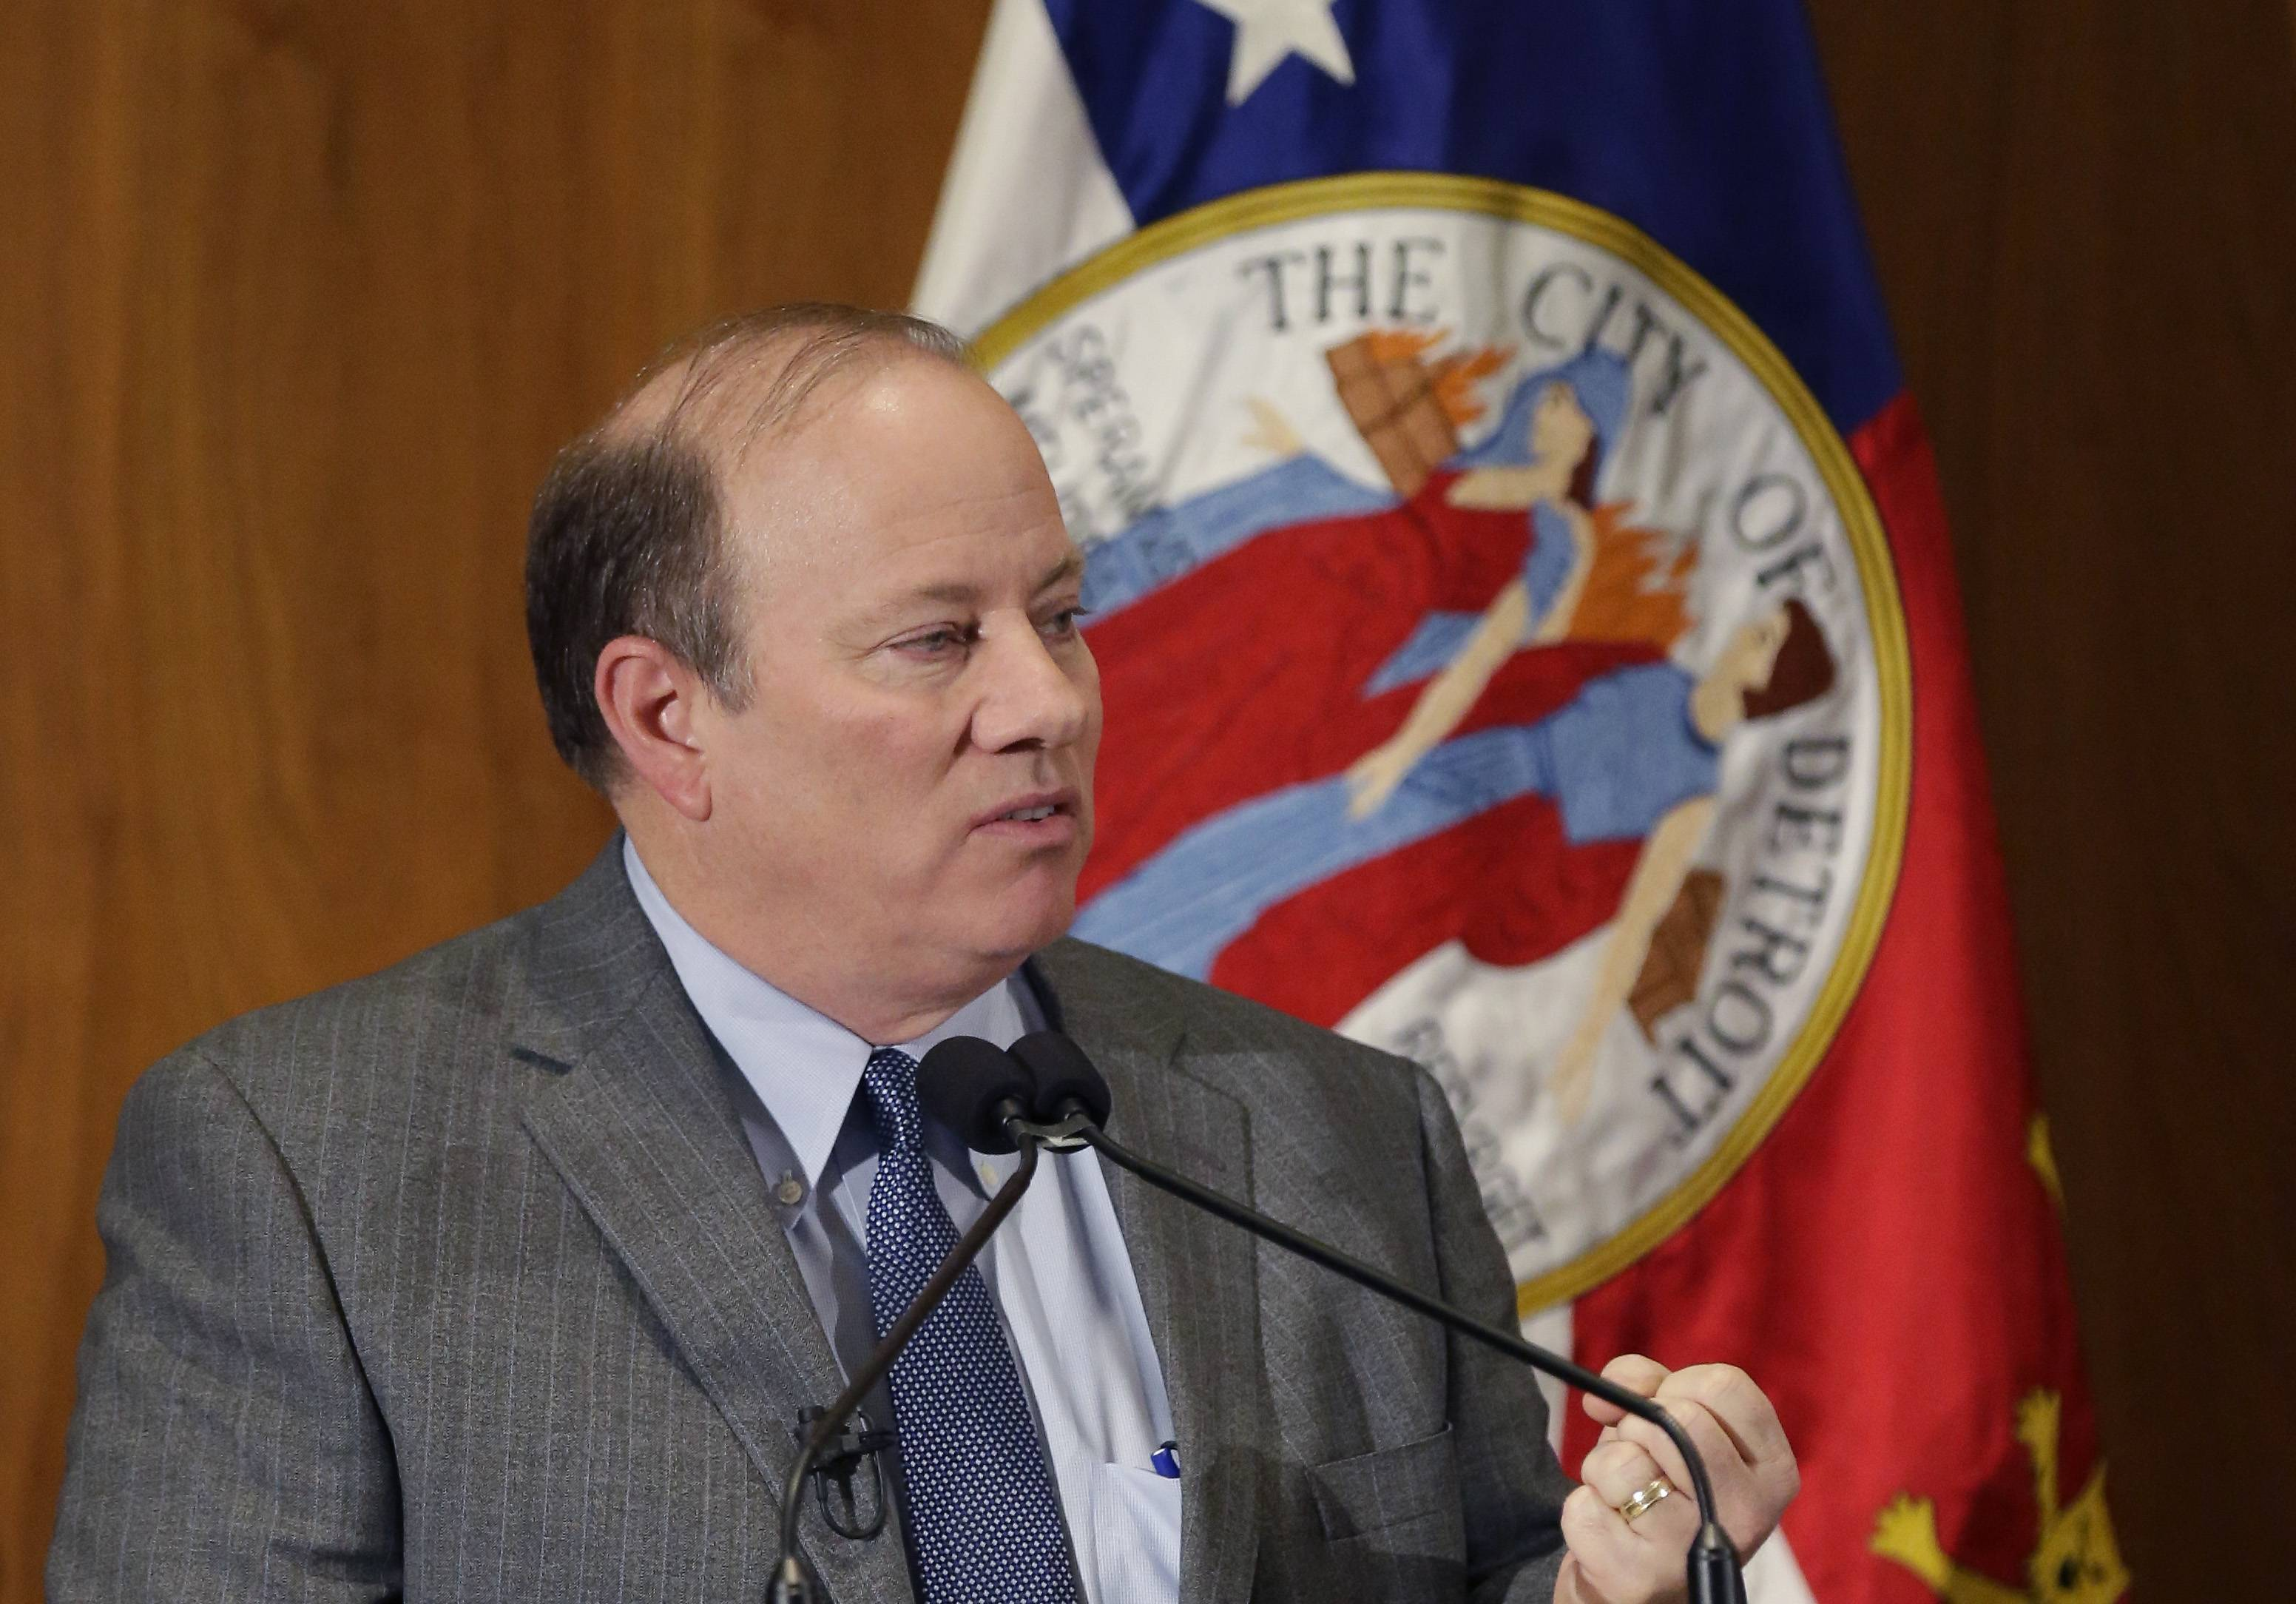 Detroit Mayor Mike Duggan delivers his first State of the City address, Wednesday, Feb. 26, 2014, in Detroit.